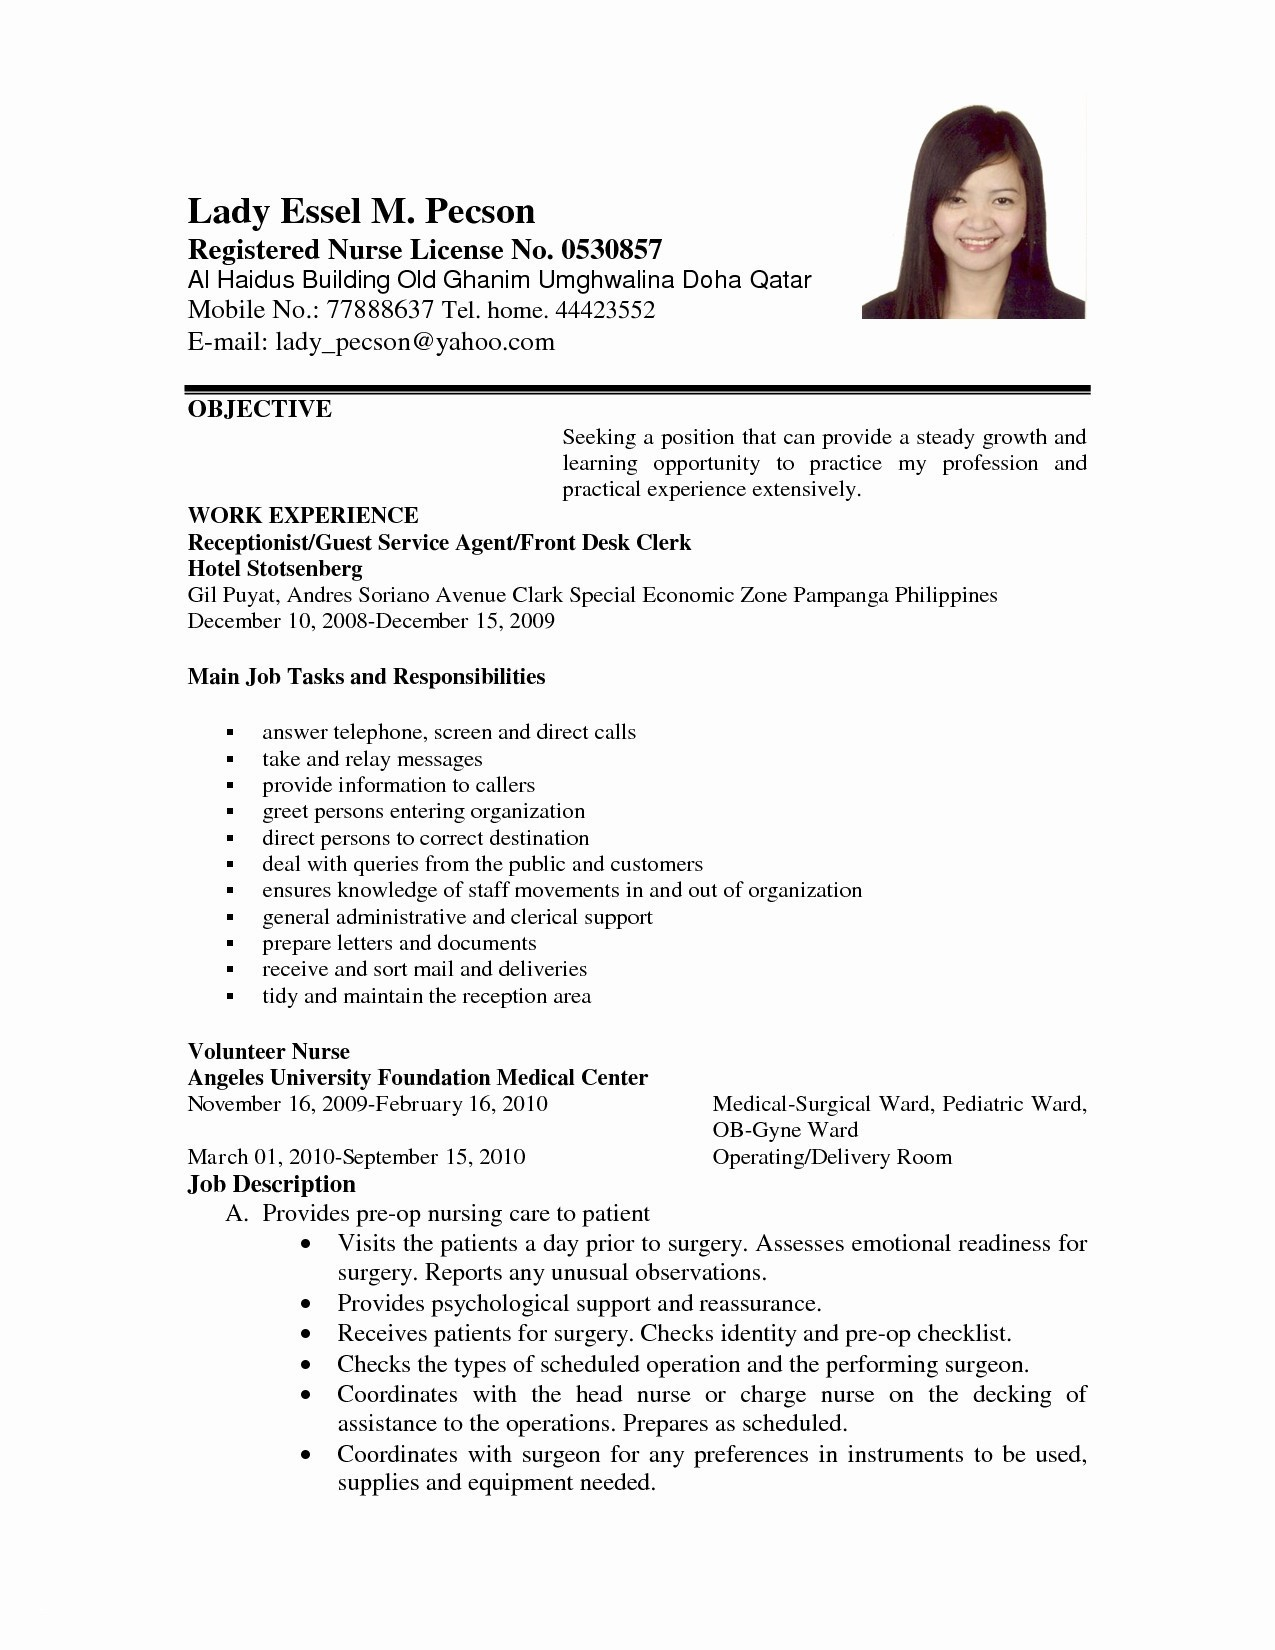 Kids Acting Resume - Actors Resume Template Unique Child Actor Resume Template Awesome